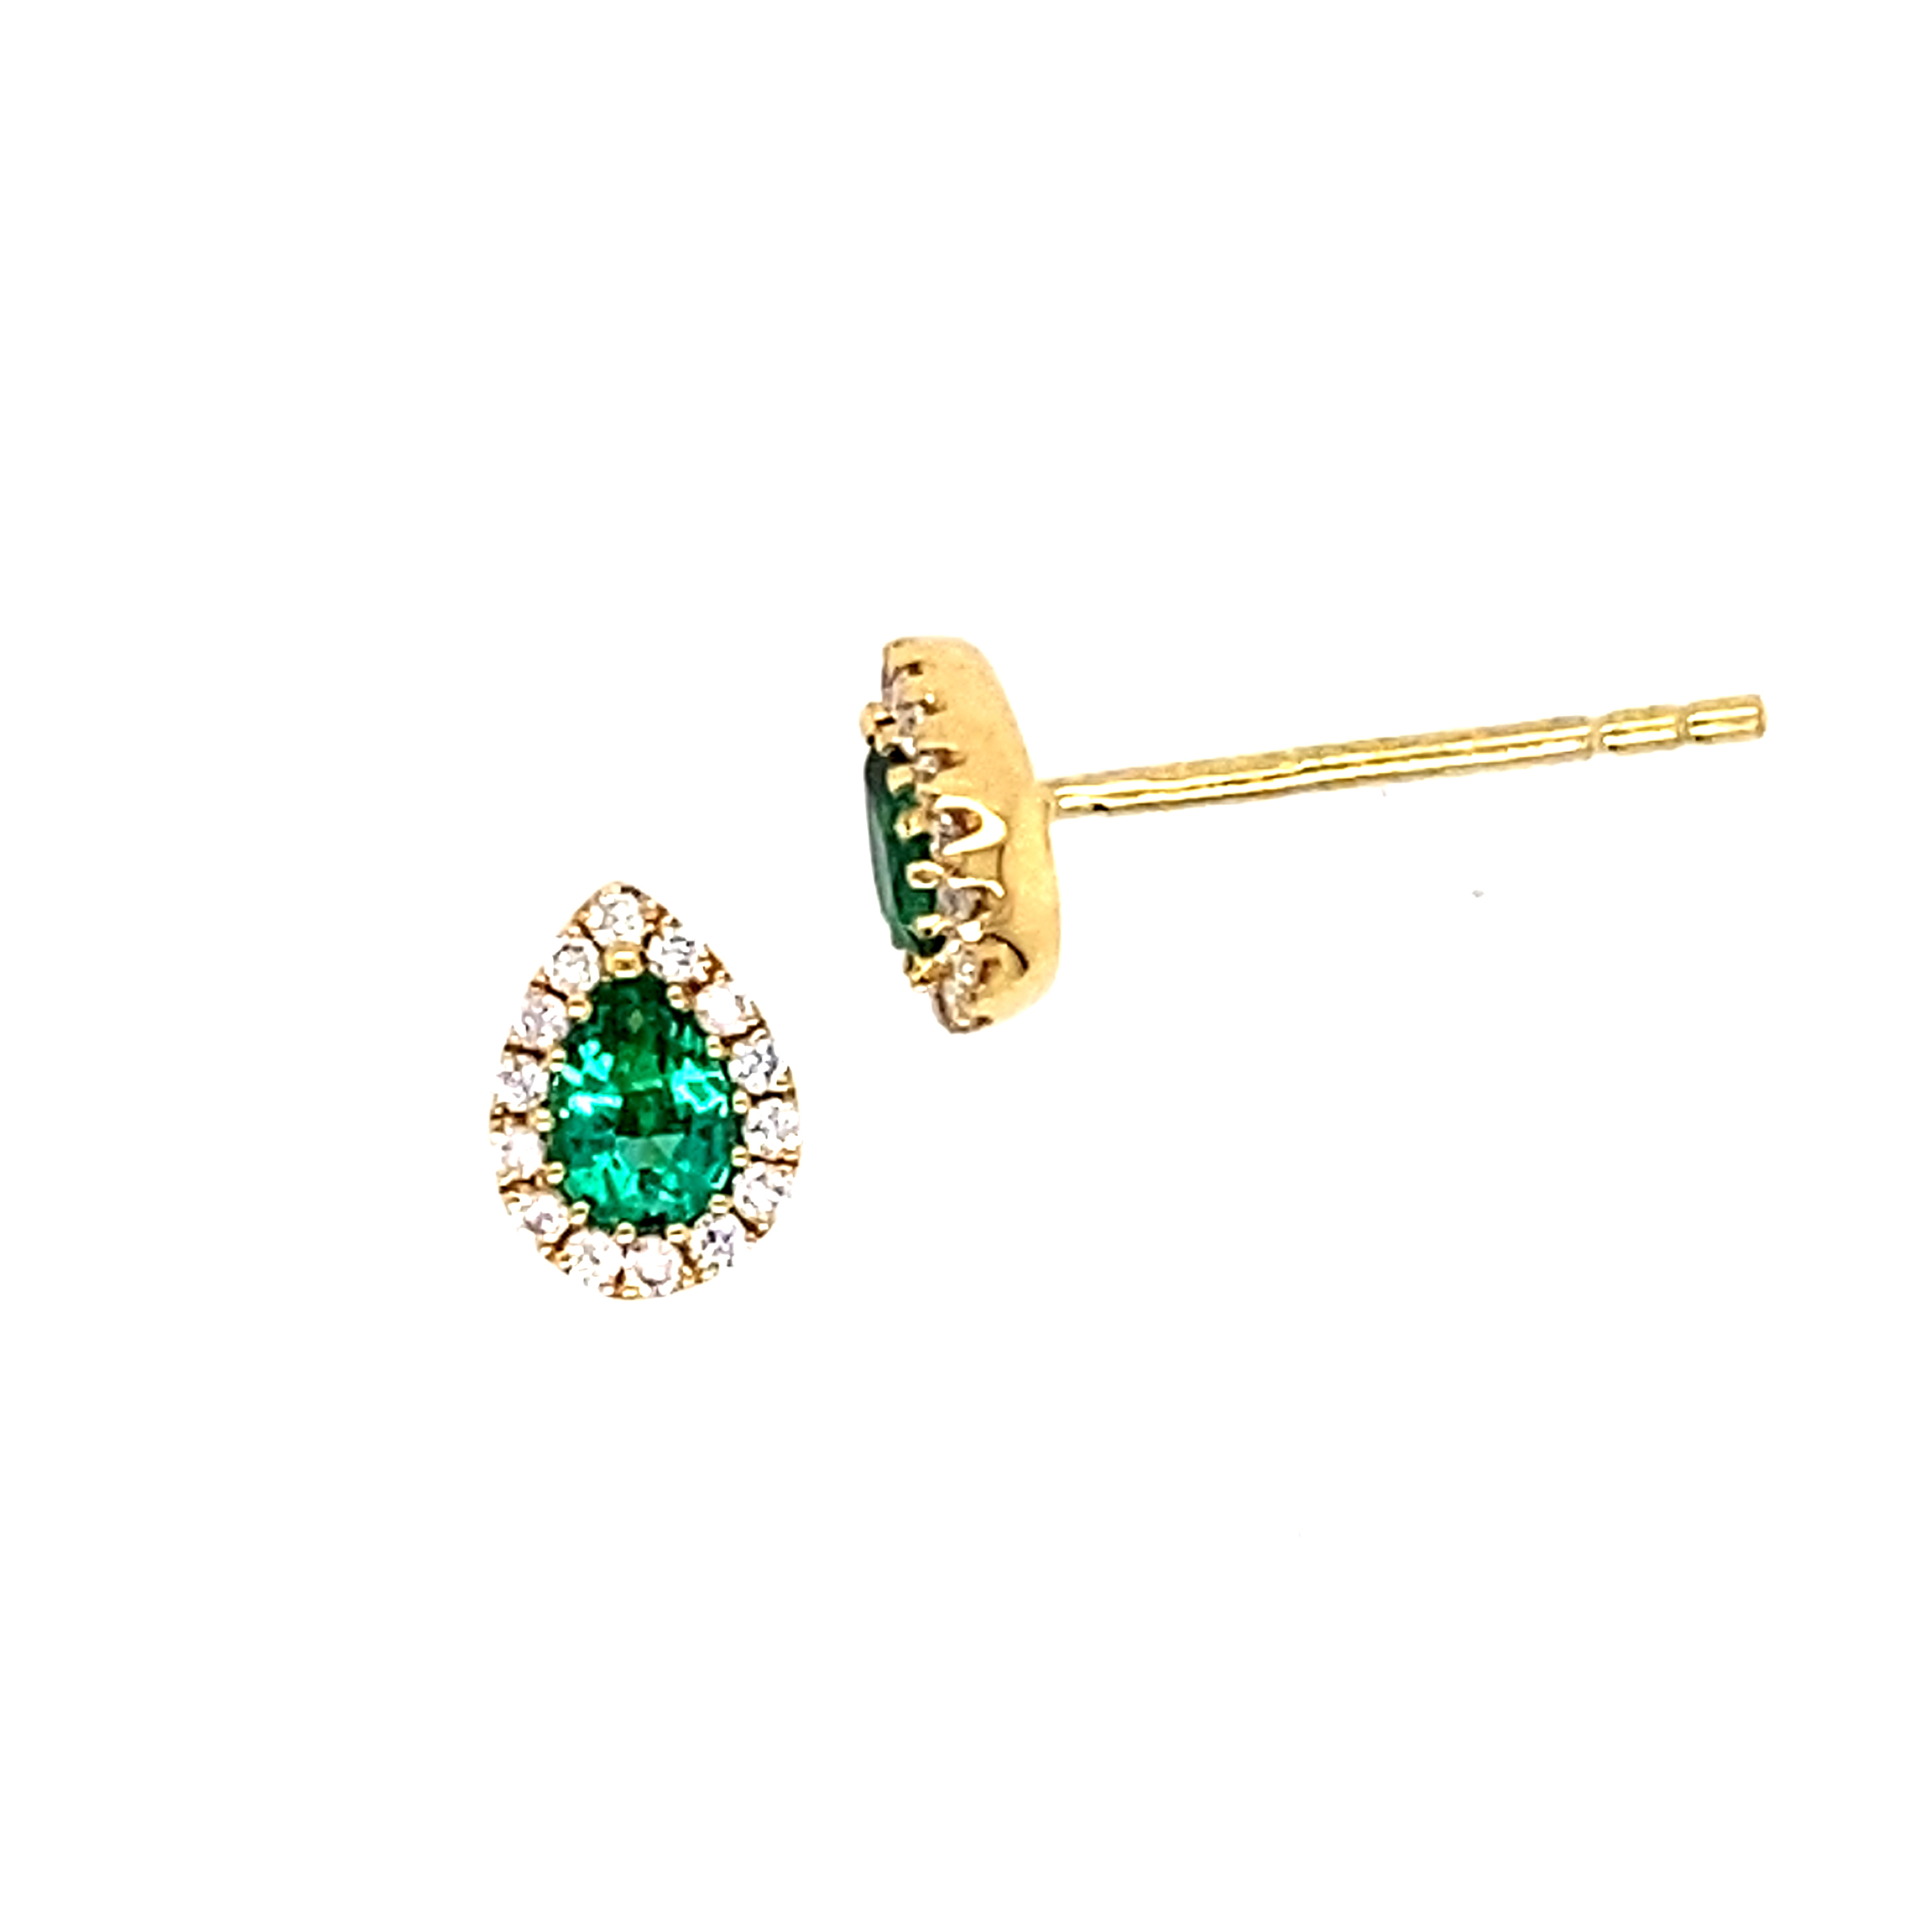 18 Carat Yellow Gold Emerald and Diamond Sstuds